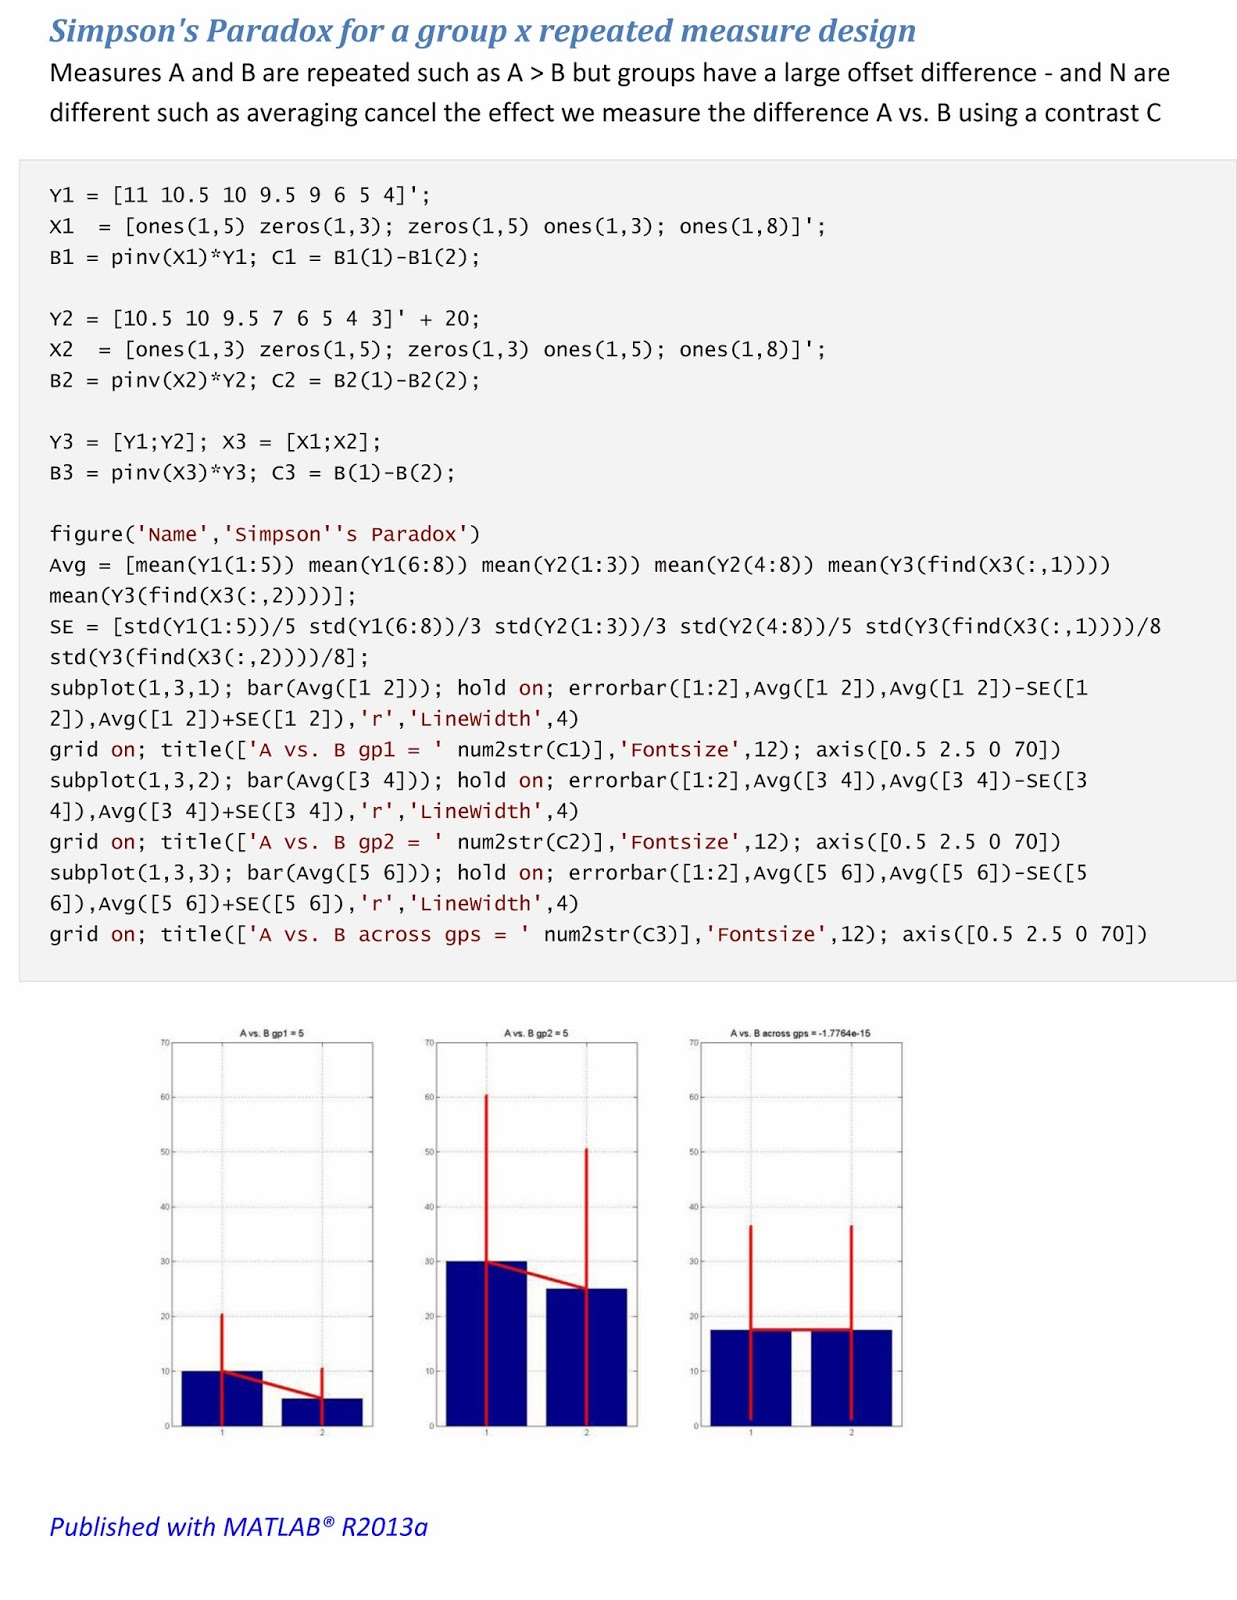 Using covariates to regress out unwanted effects